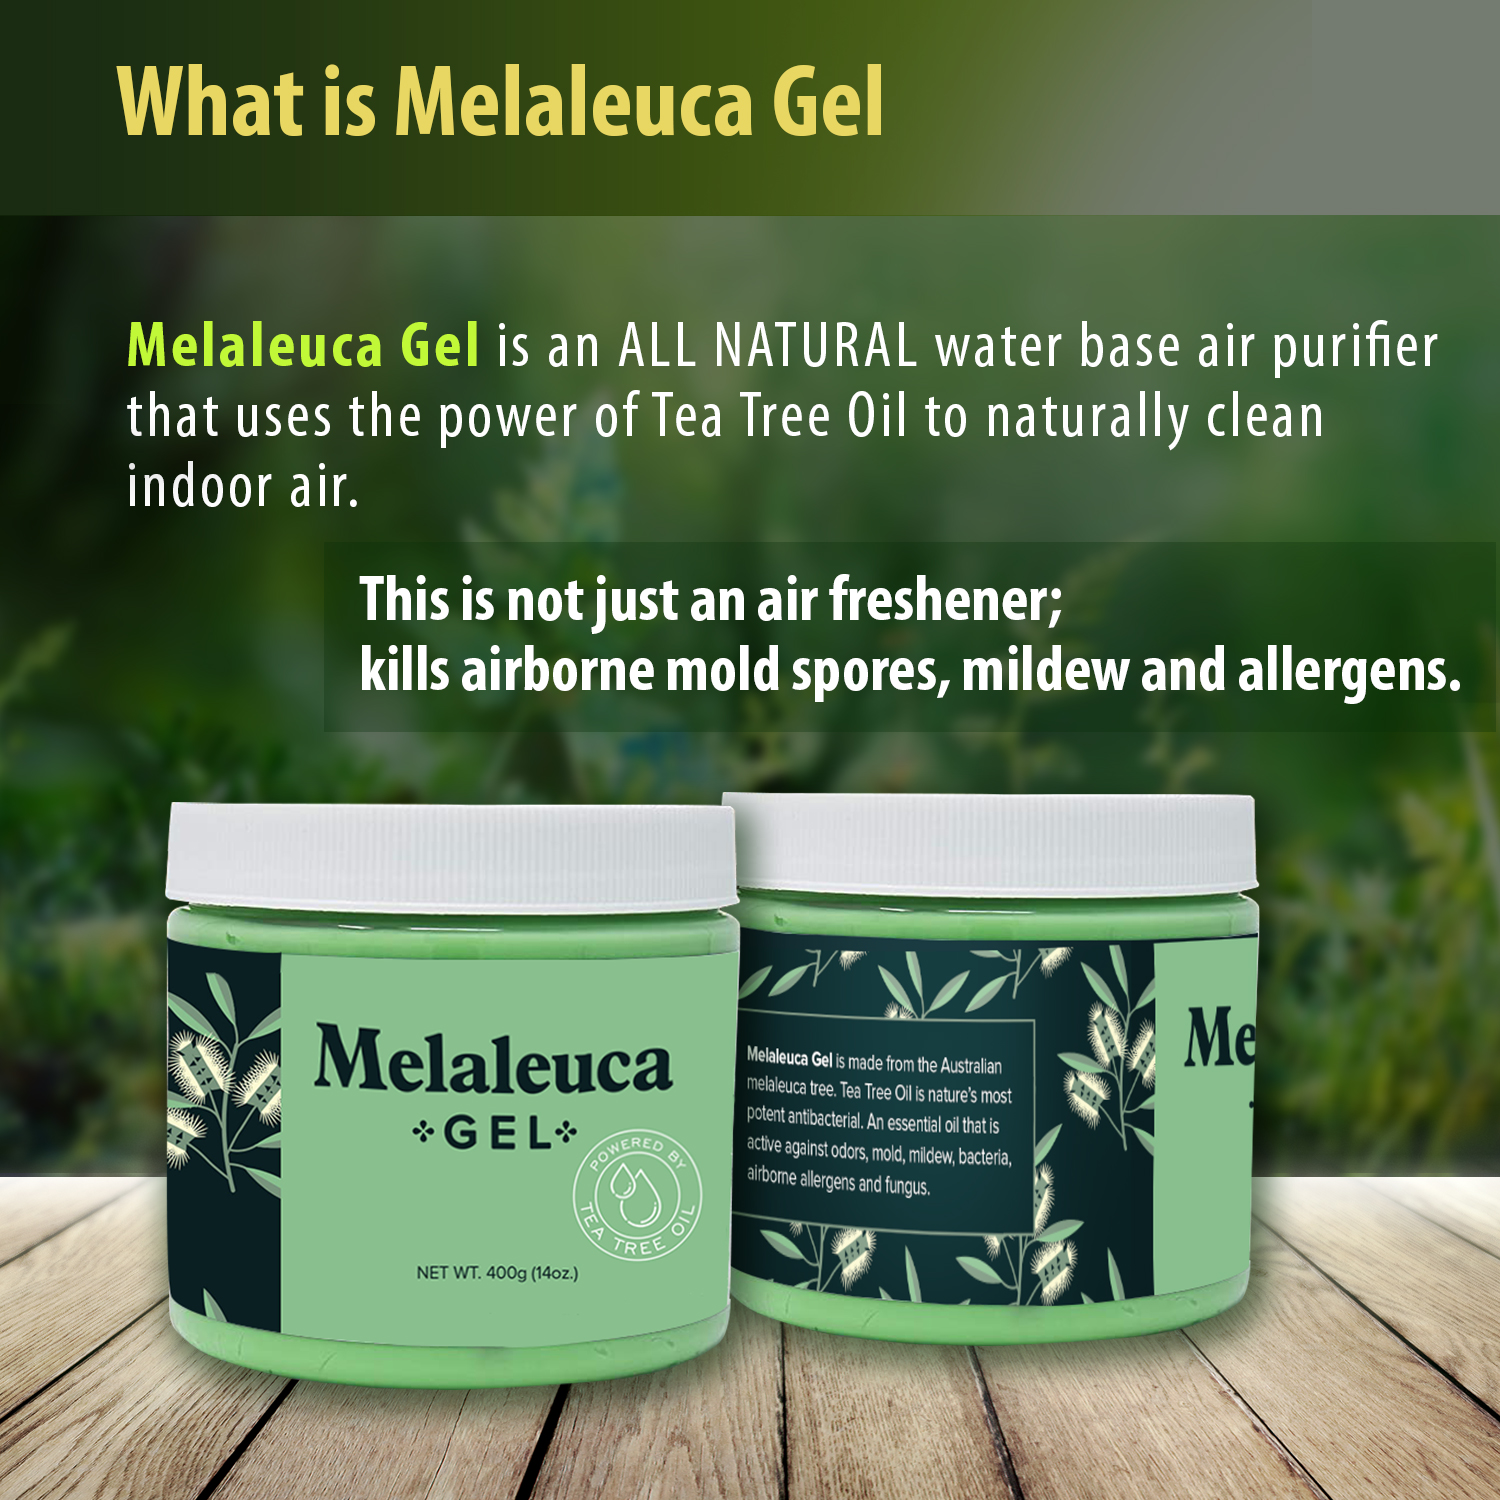 Melaleuca Gel All Natural Odor Eater with 100% Australian Tea Tree Essential Oil that naturally cleans the air of allergens. Clean air in moist basements, RV's, Boats, and more